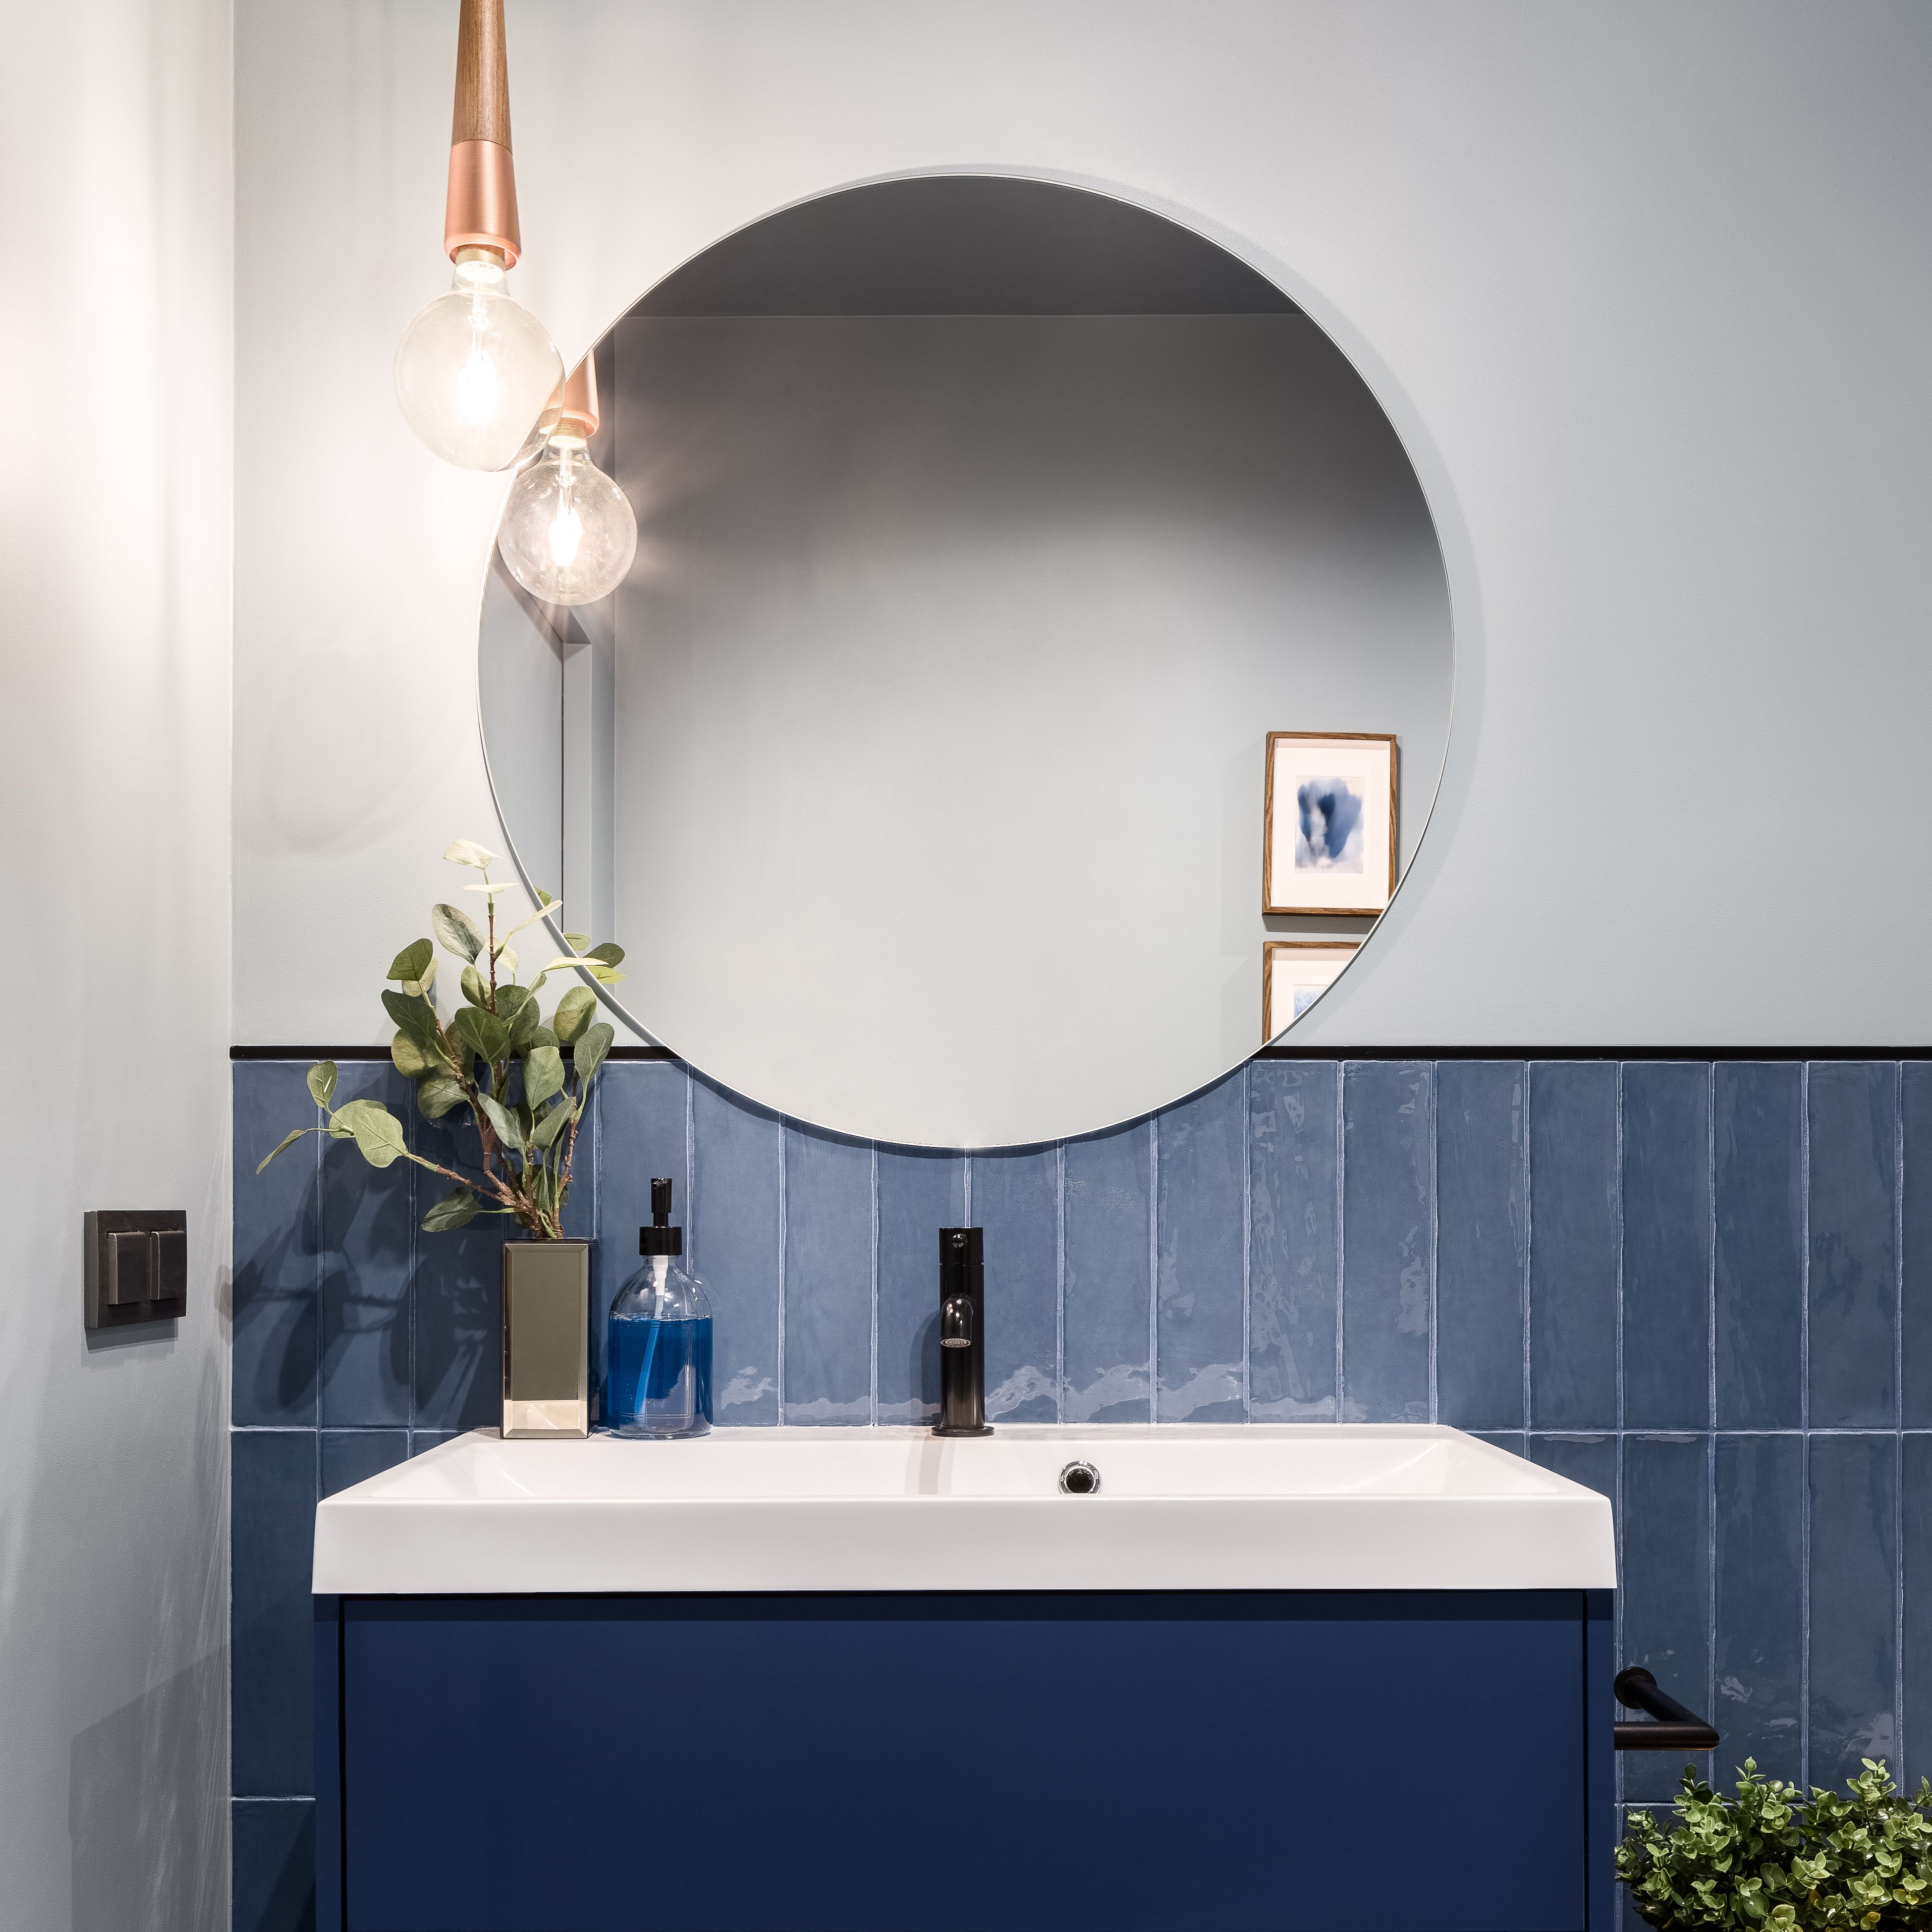 Guide To Buying The Right Bathroom Sink